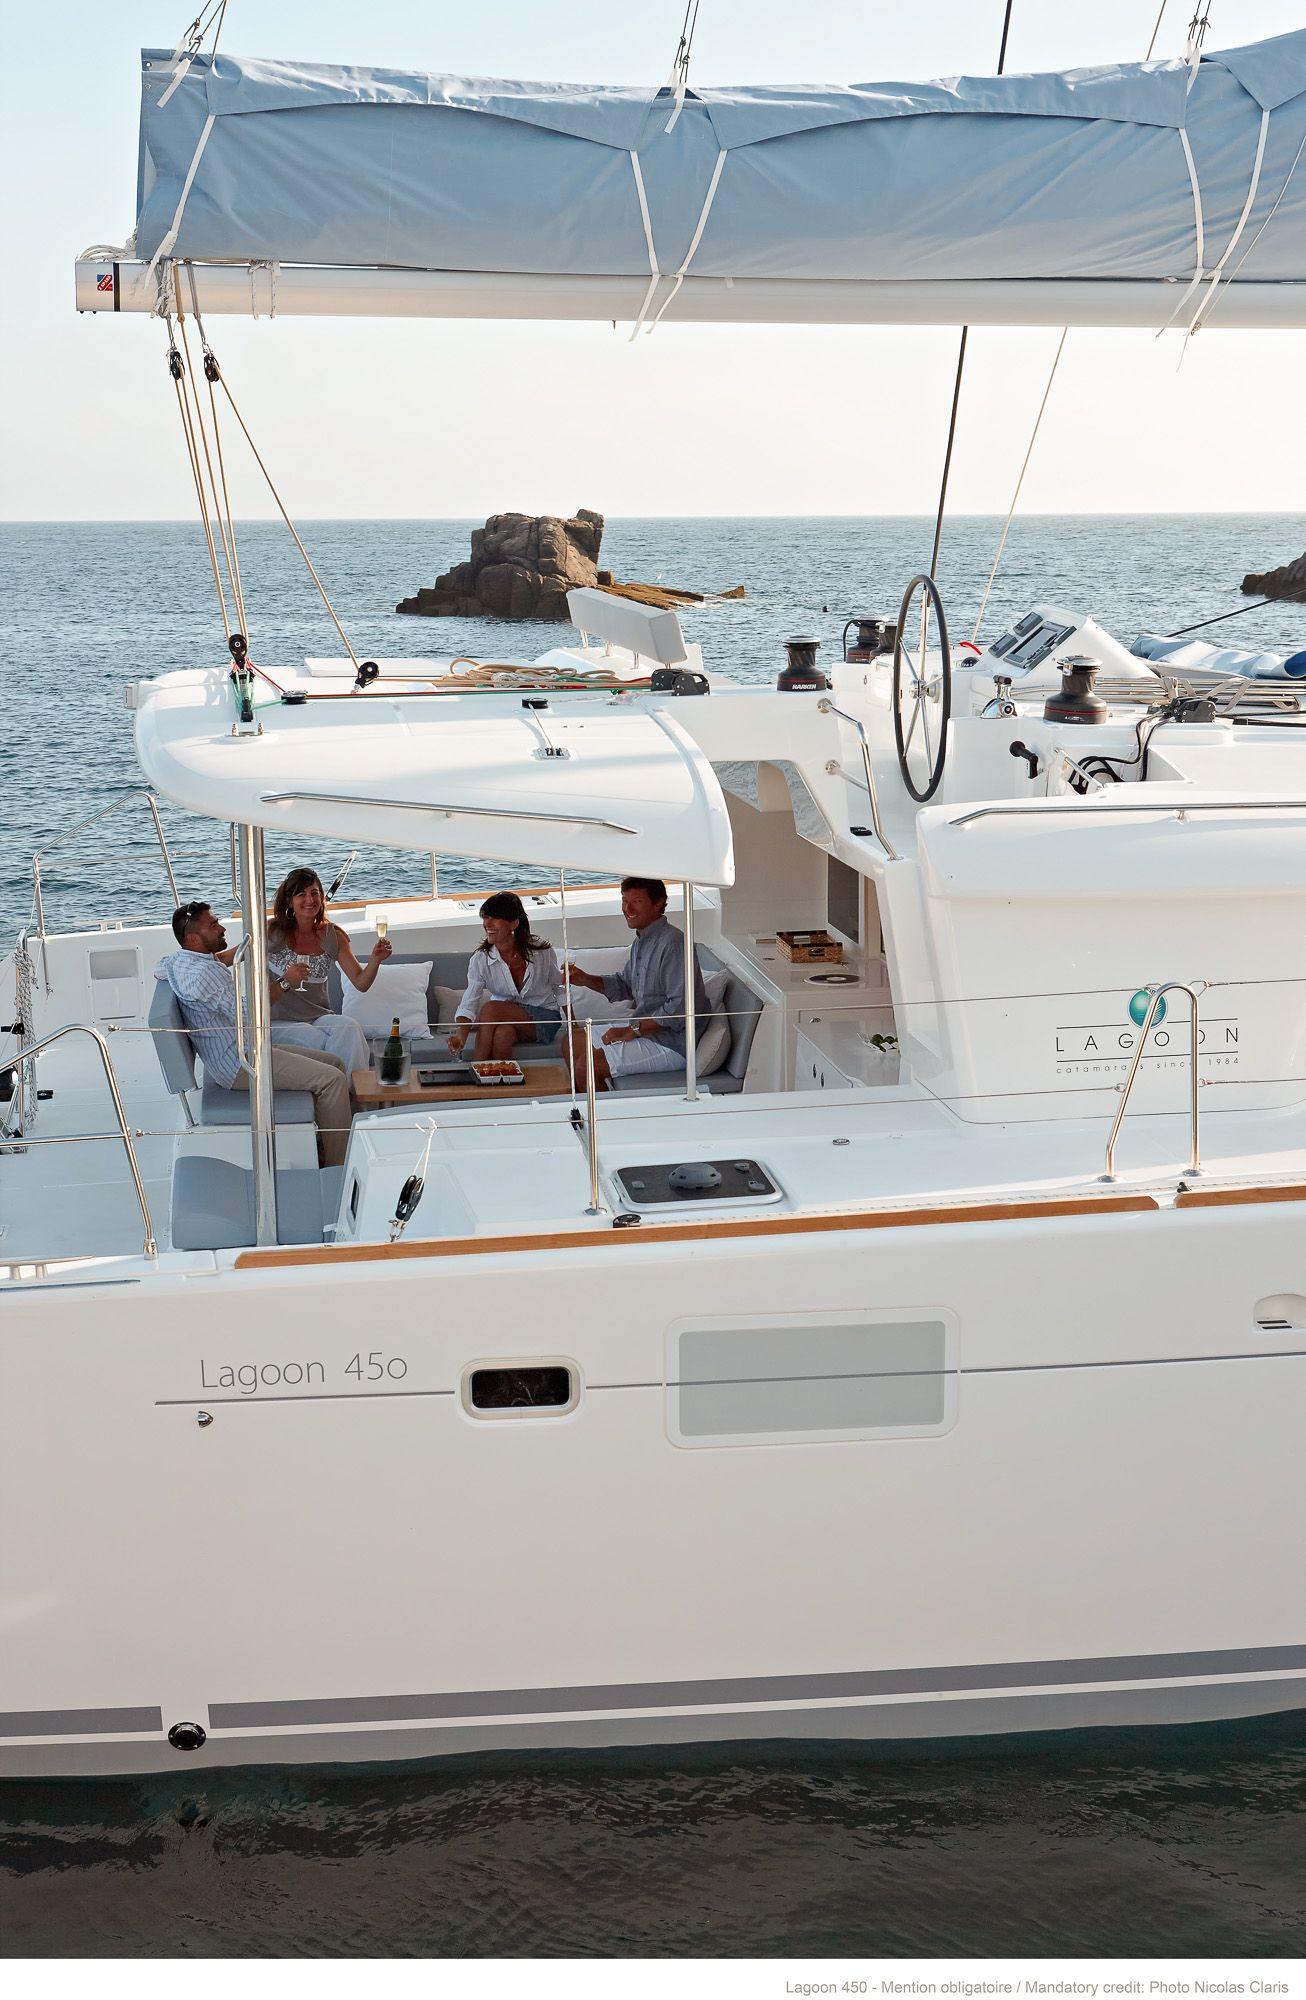 Sunsail 444 for sale - Lagoon Catamarans Building Sale And Chartering Of Luxury Cruising Catamarans